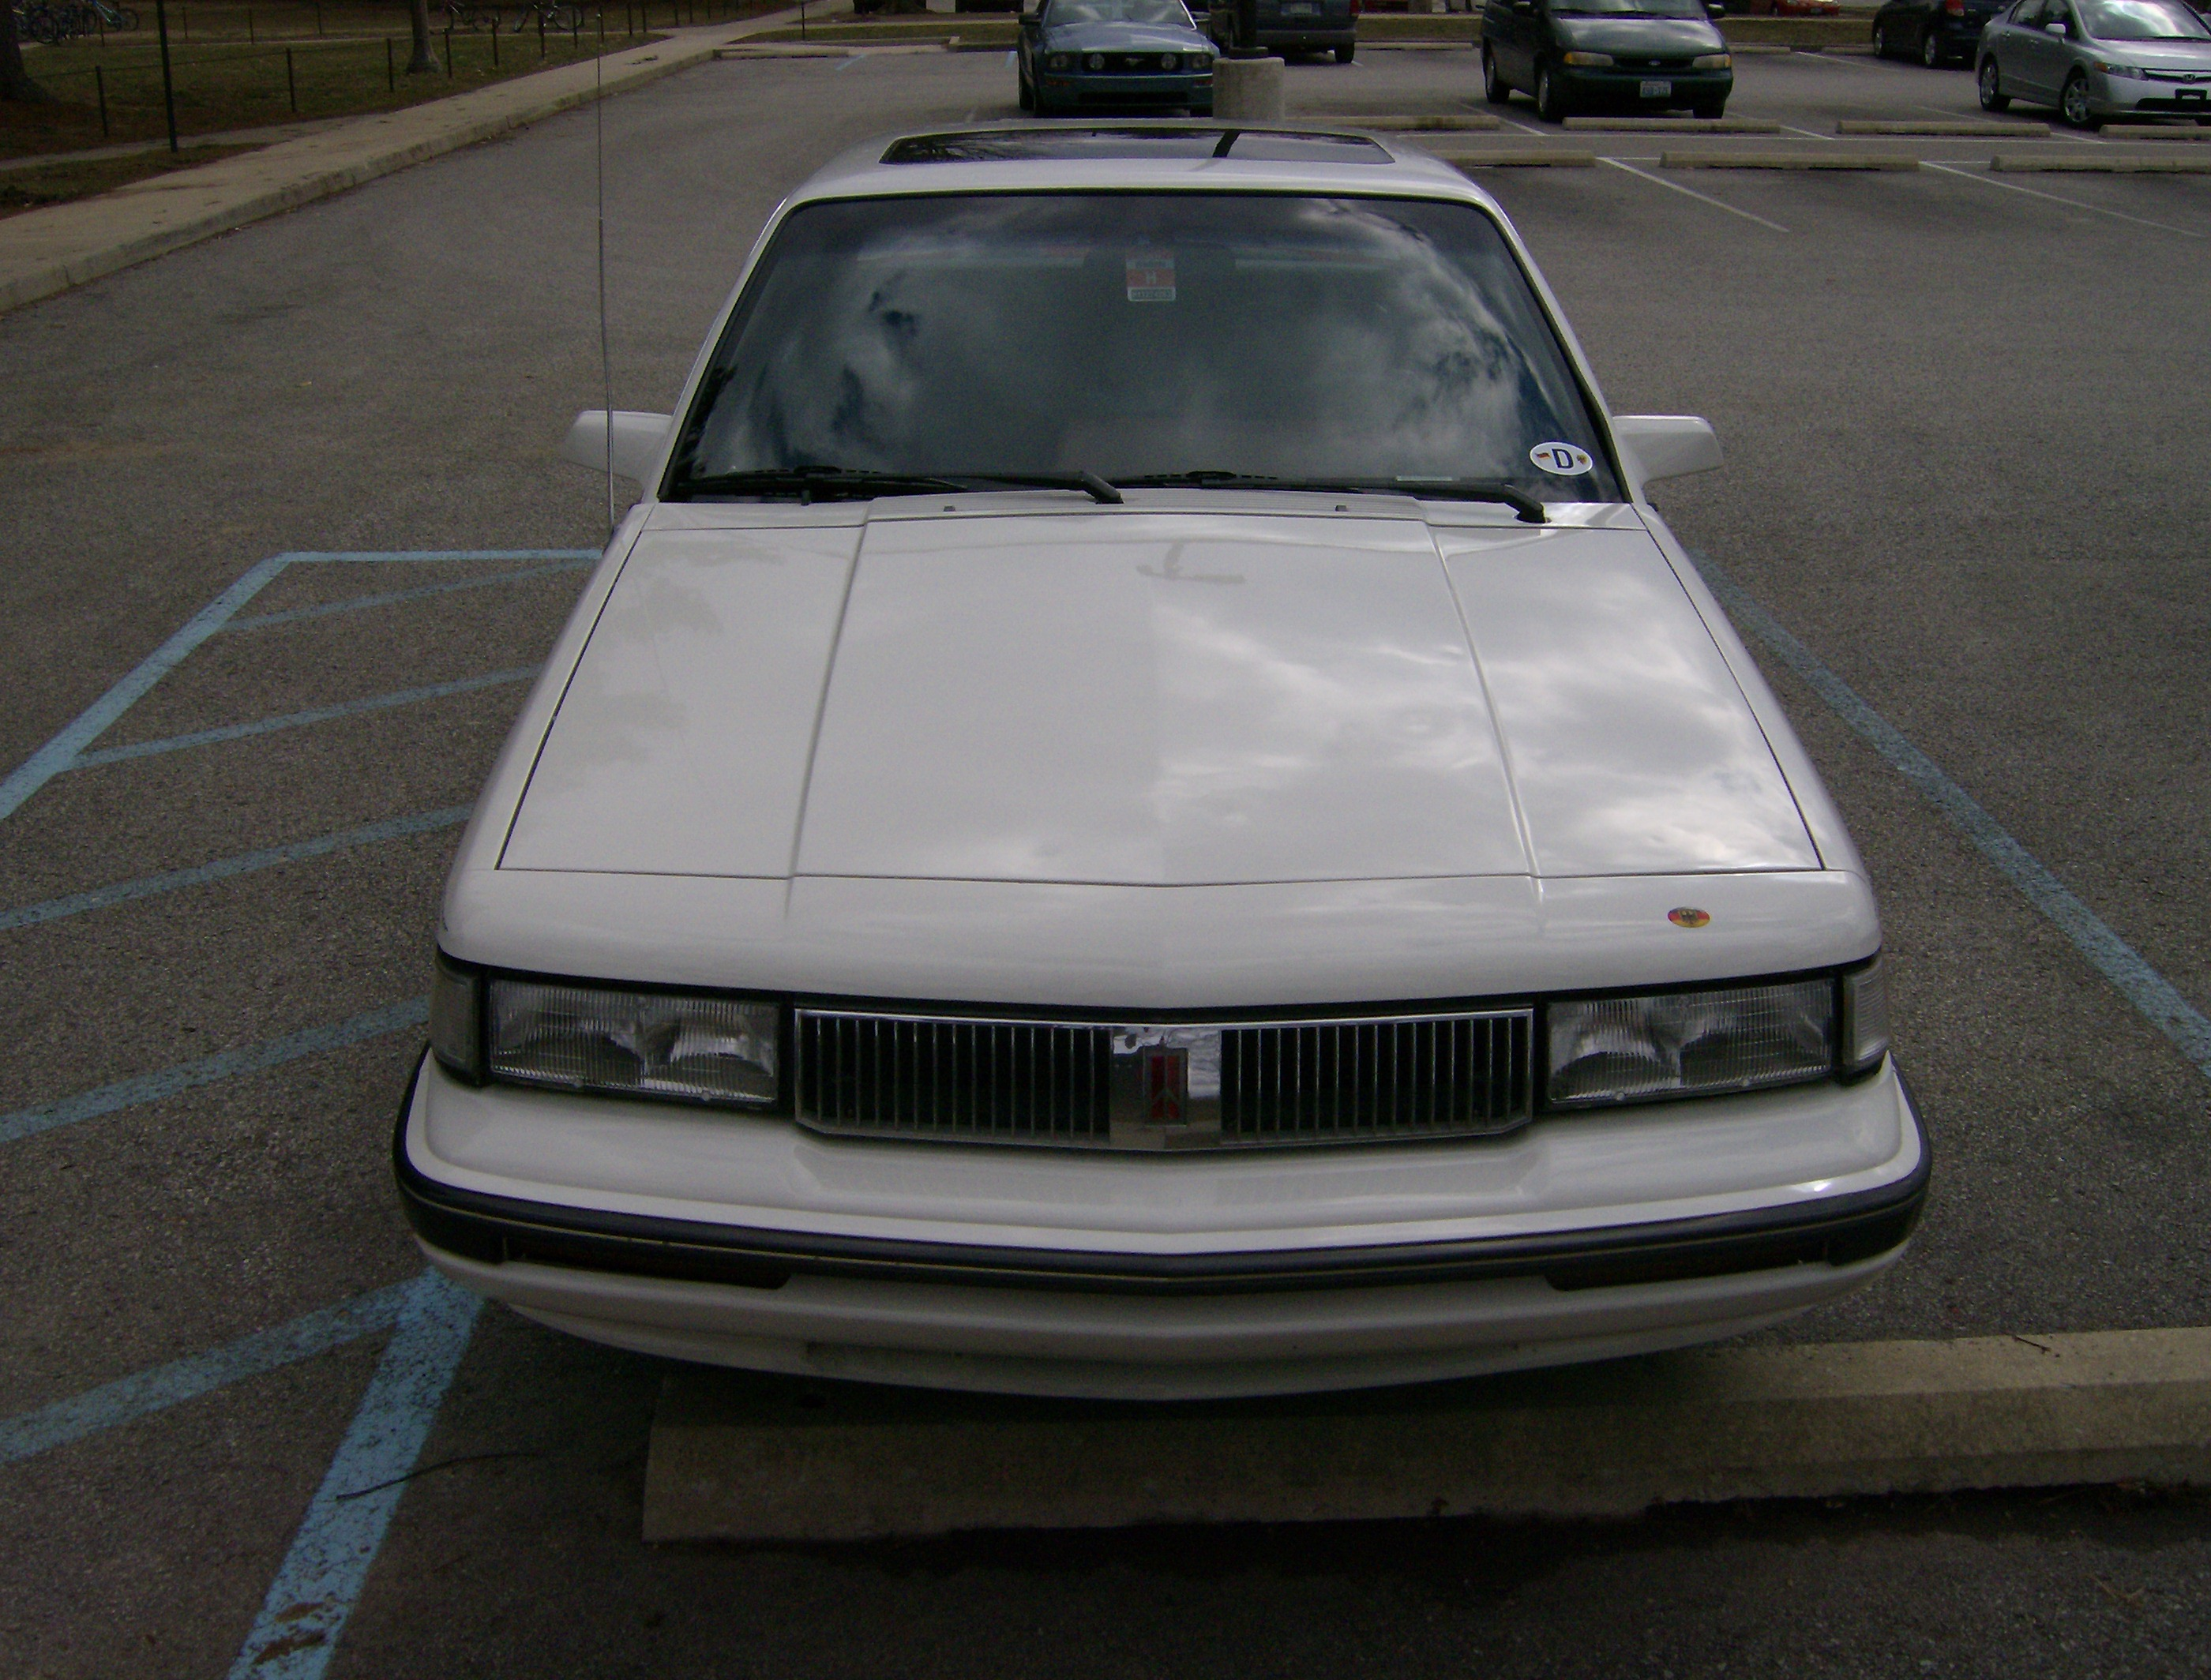 Oldsmobile Cutlass Ciera #8